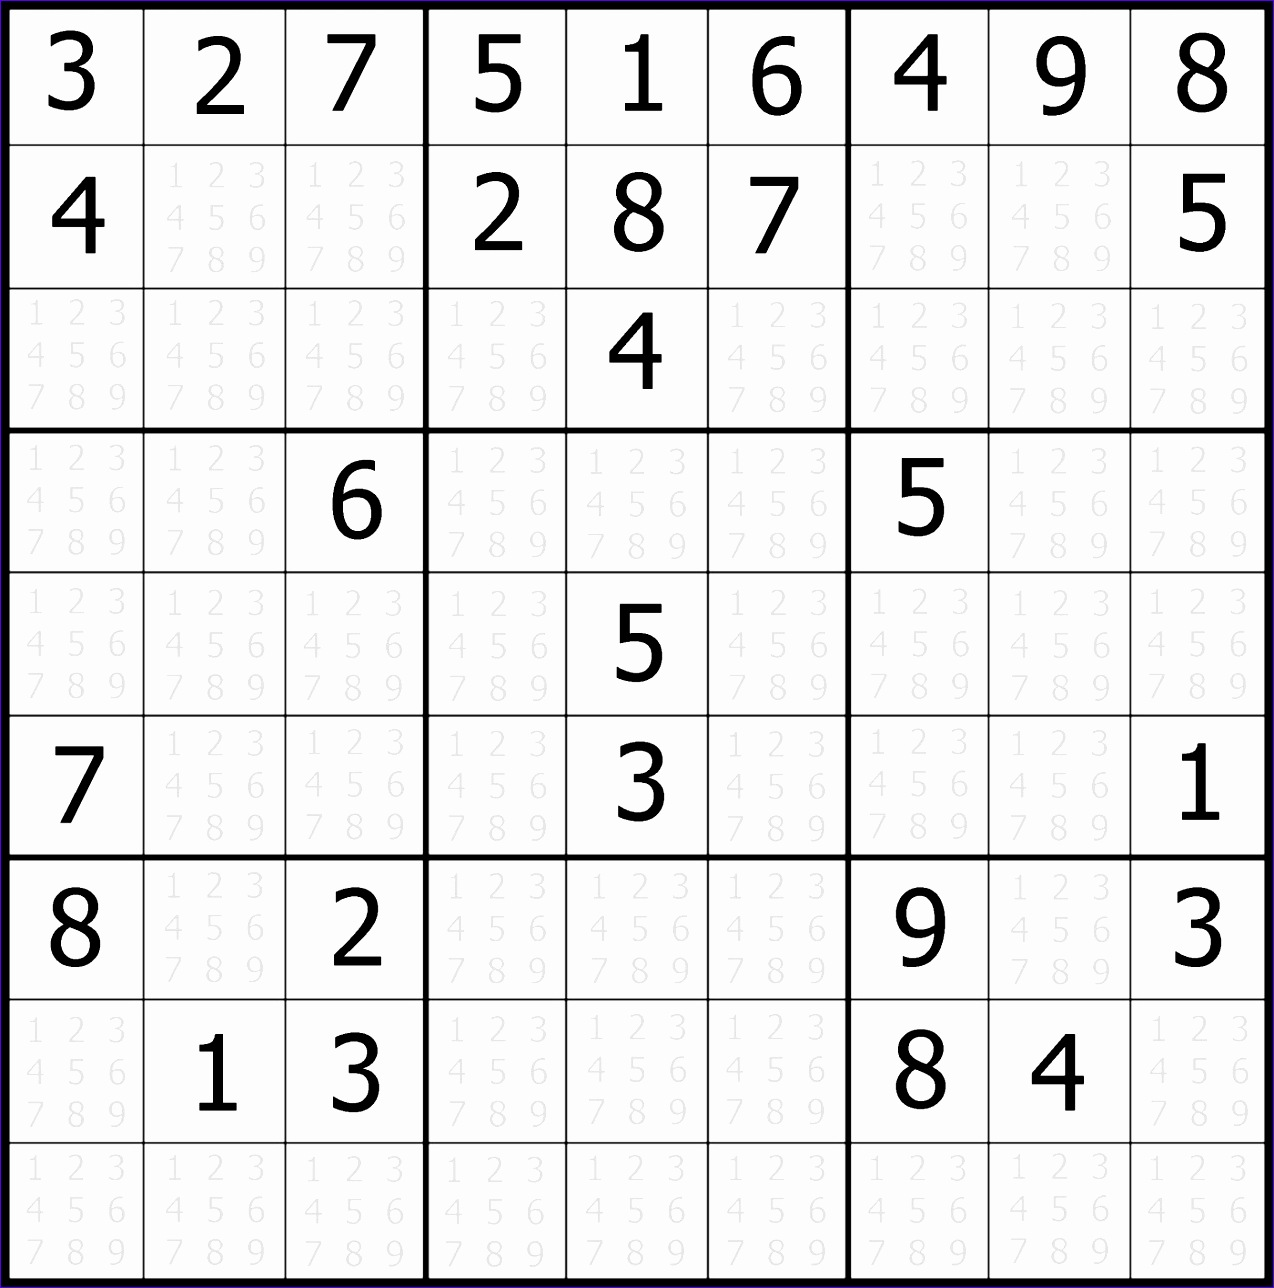 14 excel sudoku template - exceltemplates